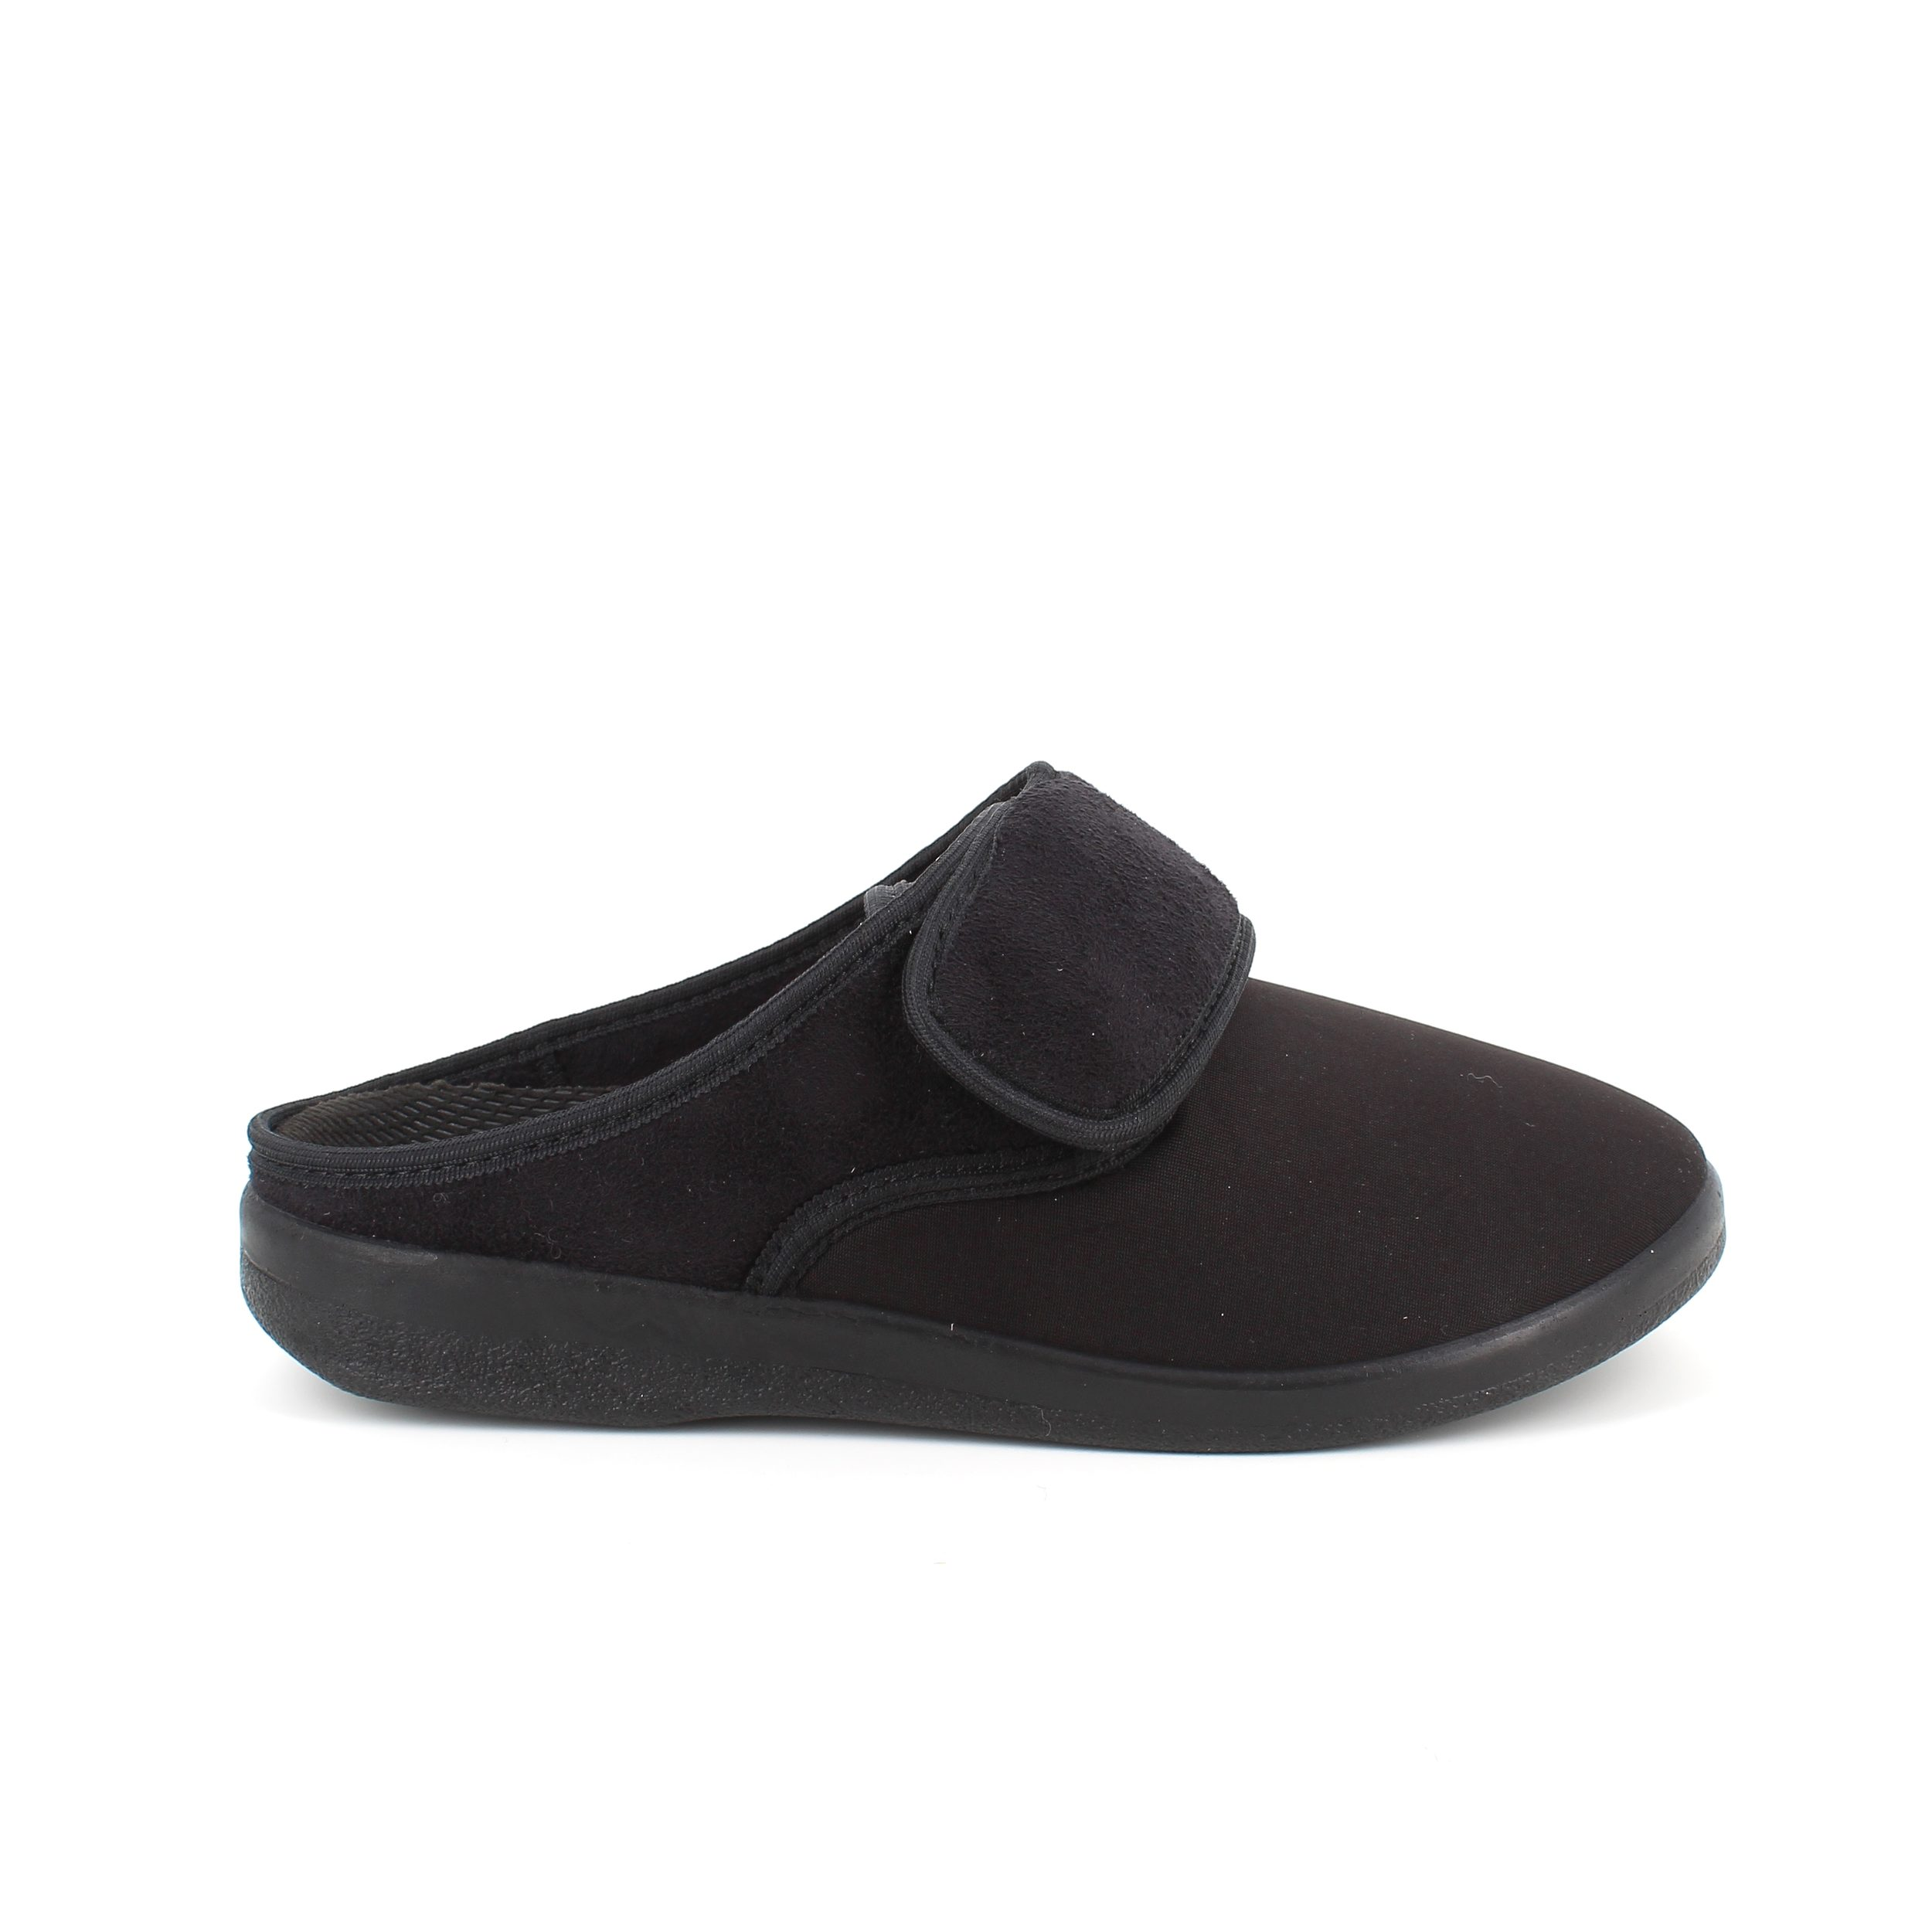 Image of   Bred sko fra OrtoMed slip in model med velcro omkring vristen - 40